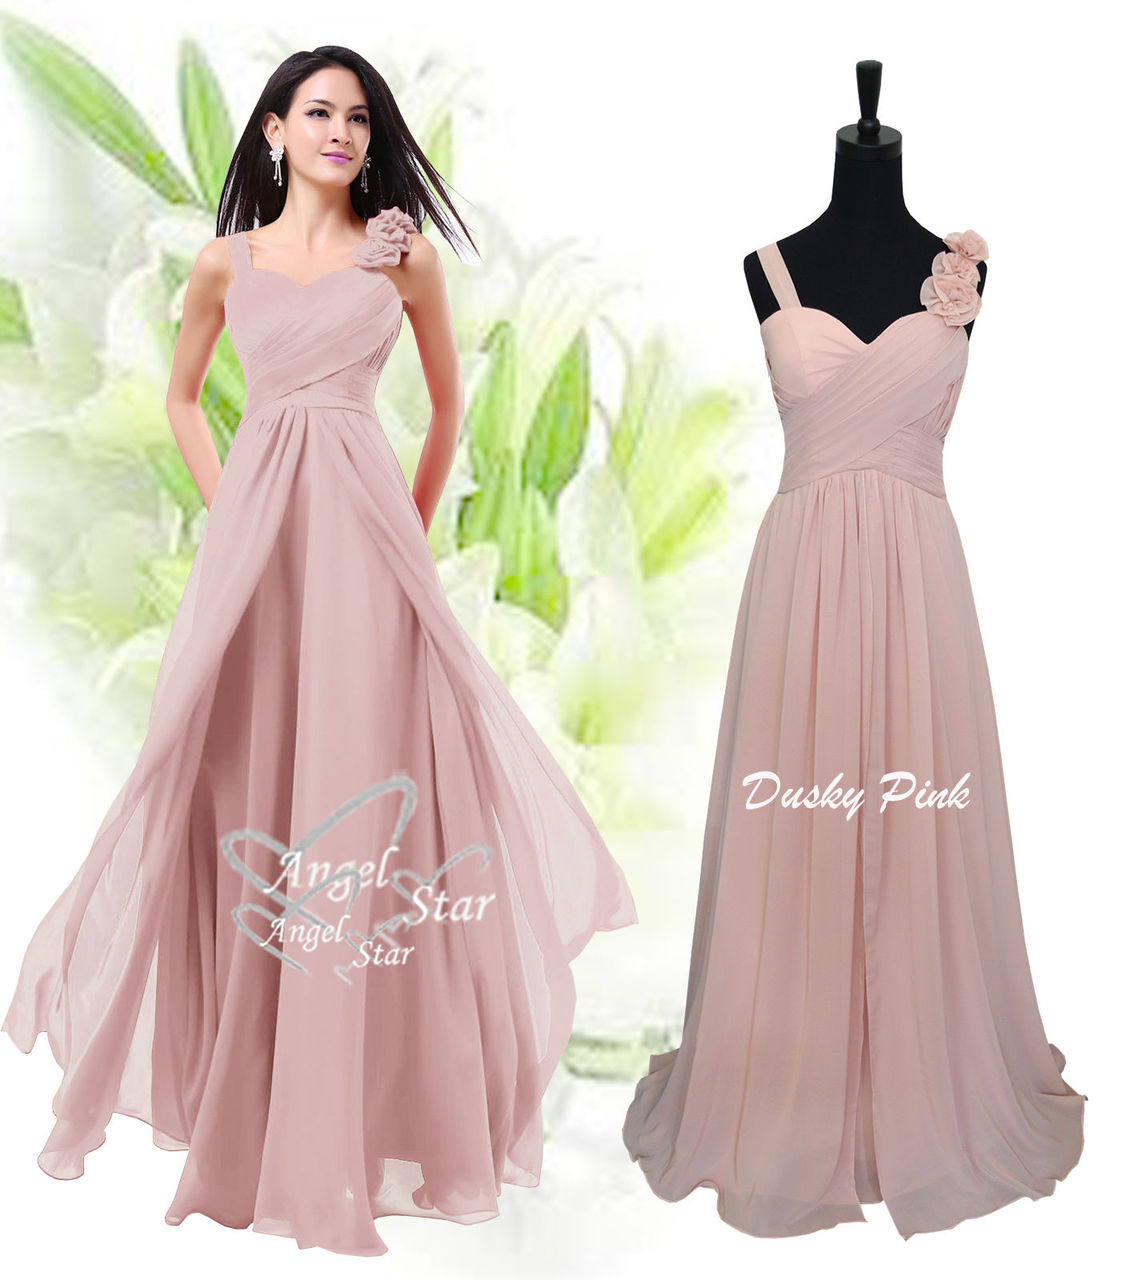 1d5357fd06 New Formal Long Evening Ball Gown Party Prom Bridesmaid Dress Size 6 - 24 -  Angel Fashion ltd